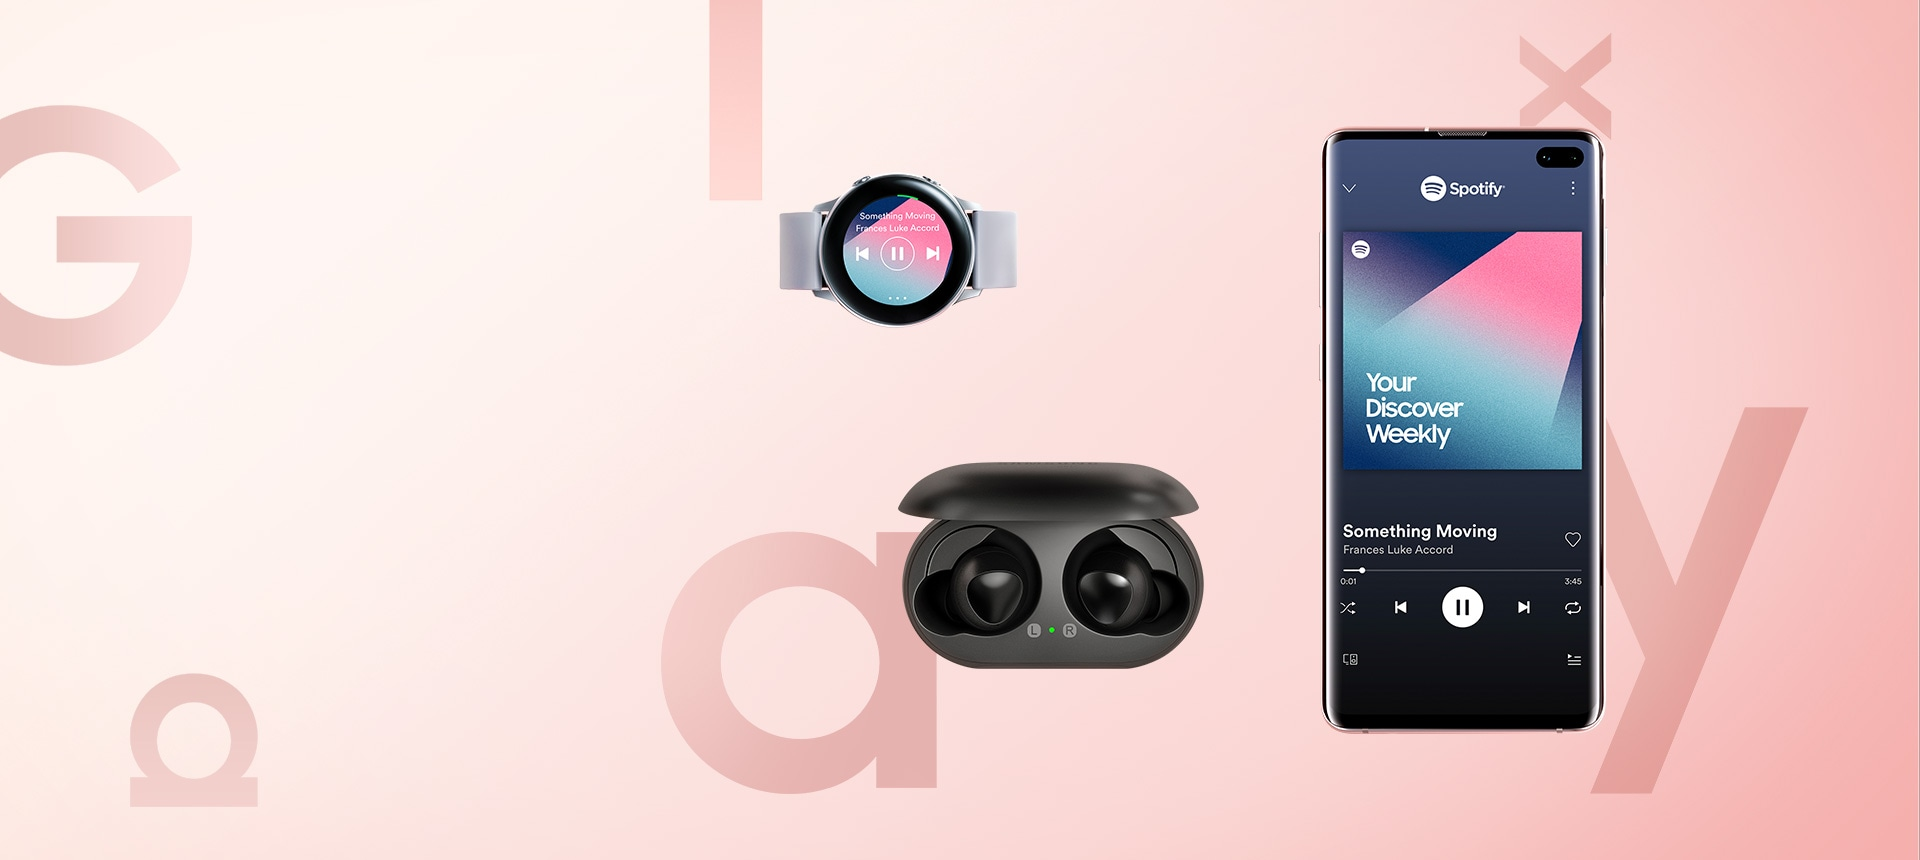 "Galaxy S10 Ecosystem Introduction image. Samsung Galaxy S10 plus, Samsung Galaxy Watch Active, and Galaxy Buds. Galaxy S10 plus has the Spotify interface onscreen, playing a song from the ""Your Discover Weekly"" playlist. Galaxy Watch Active has the Spotify watch app interface onscreen, displaying the same song."